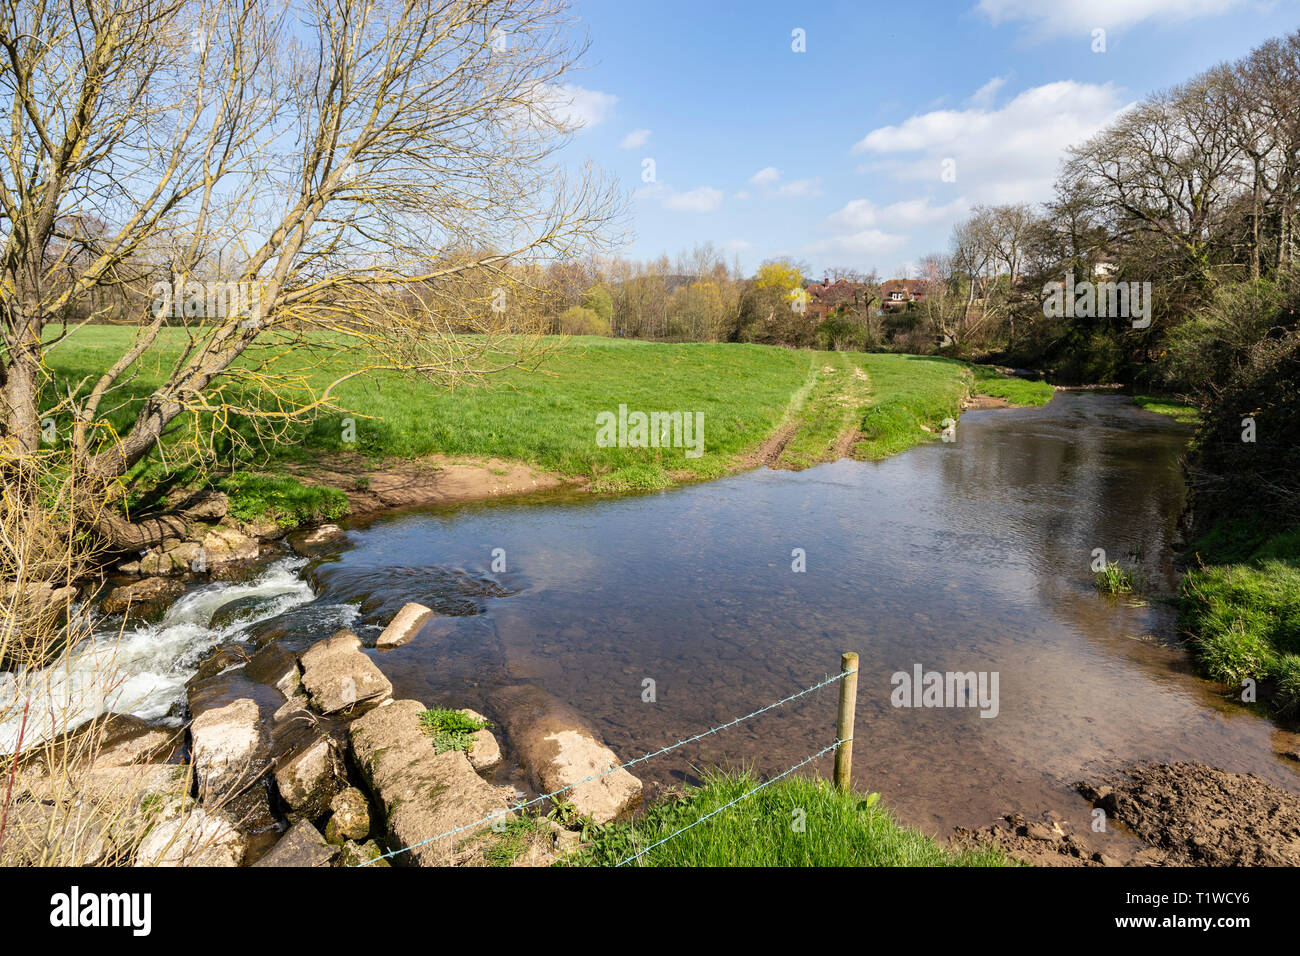 The river Sid at Fortescue, on the outskirts of Sidmouth, Devon, UK Stock Photo